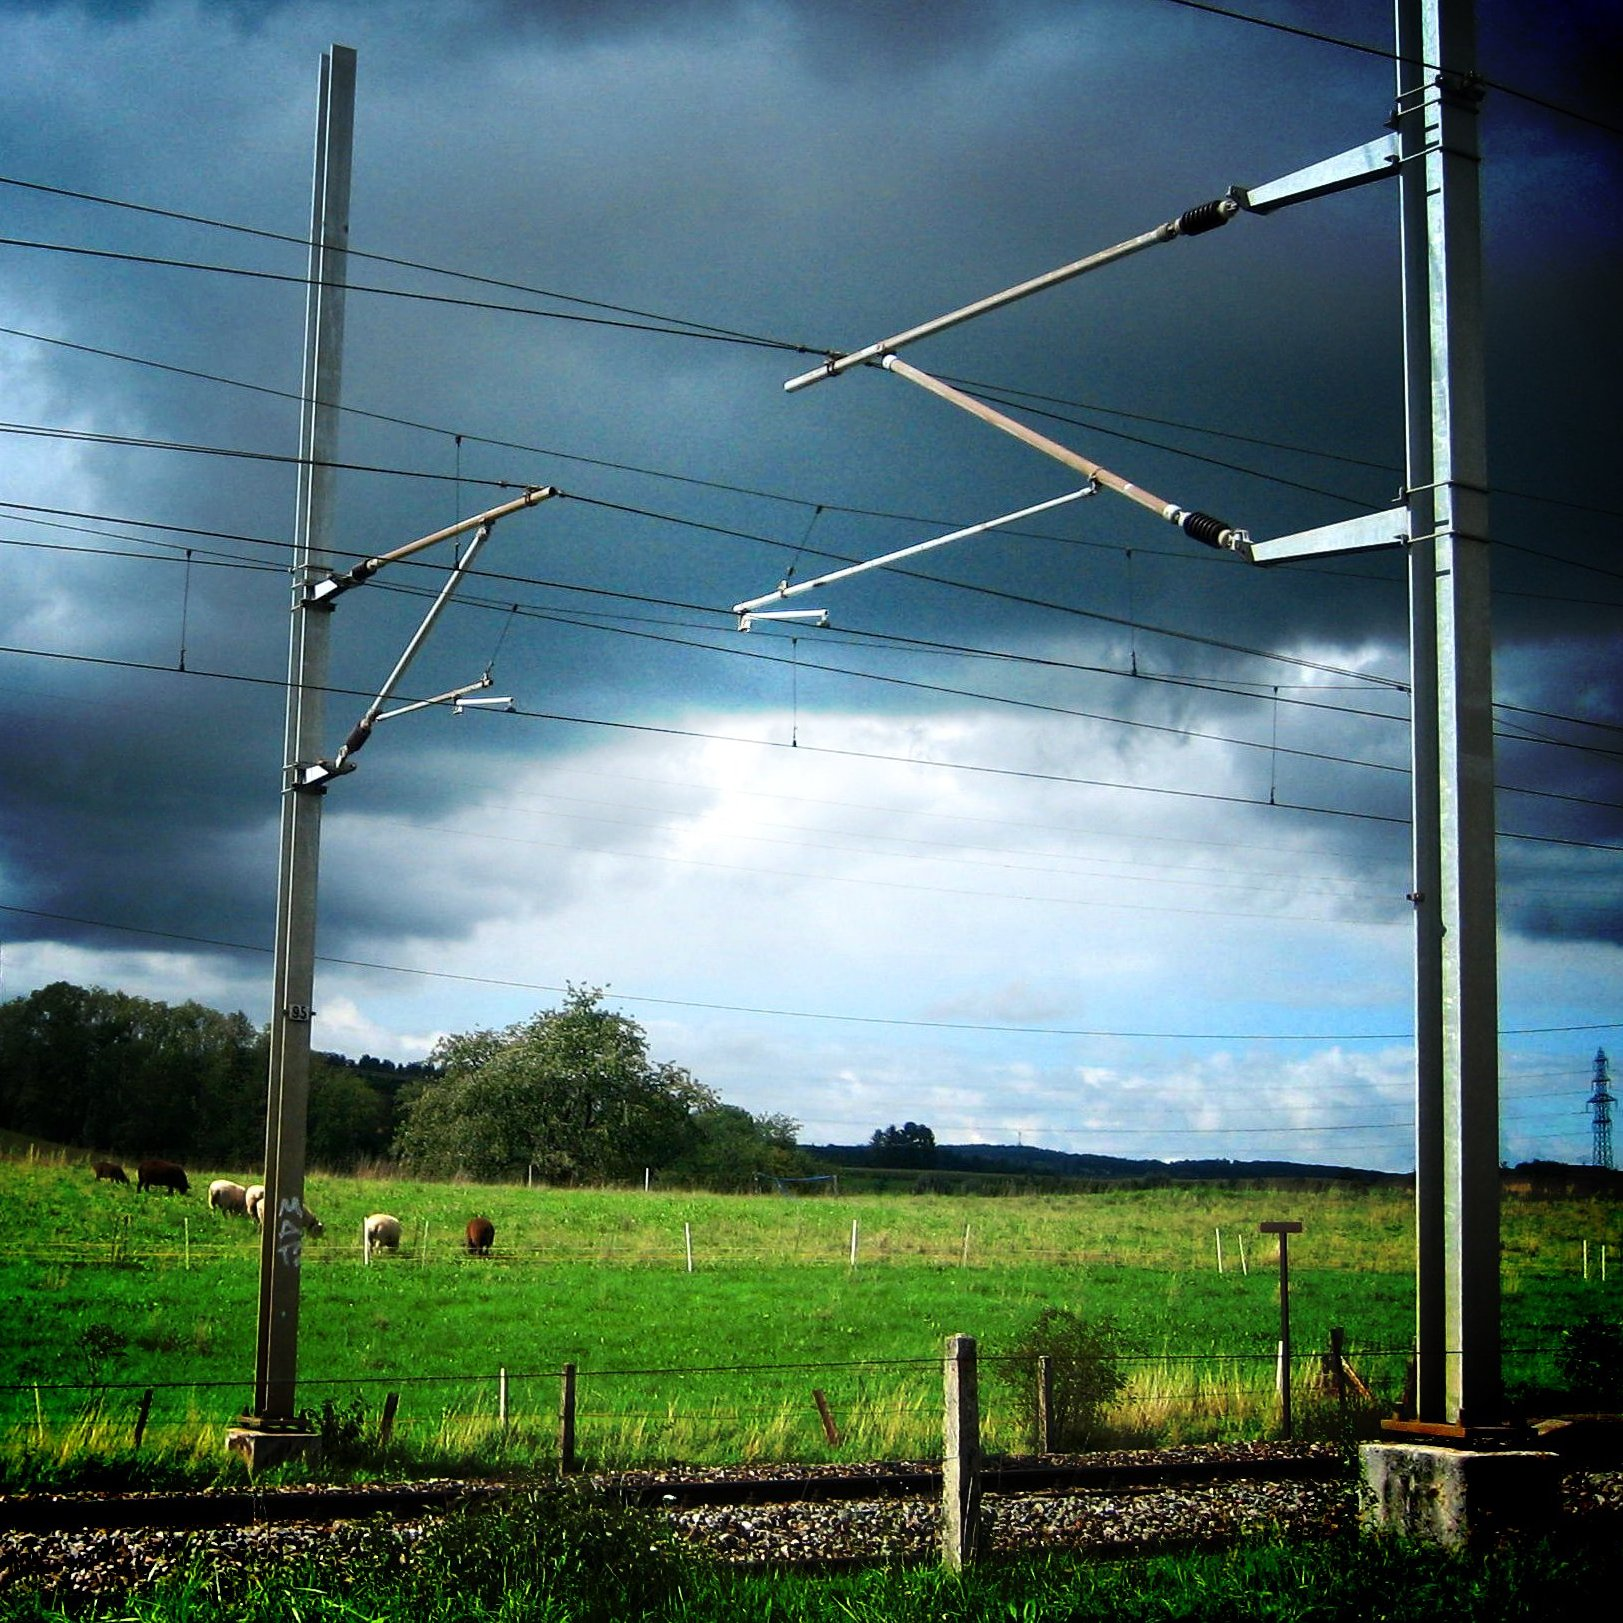 Wiring Diagram Of Network Cable Overhead Line Wikipedia